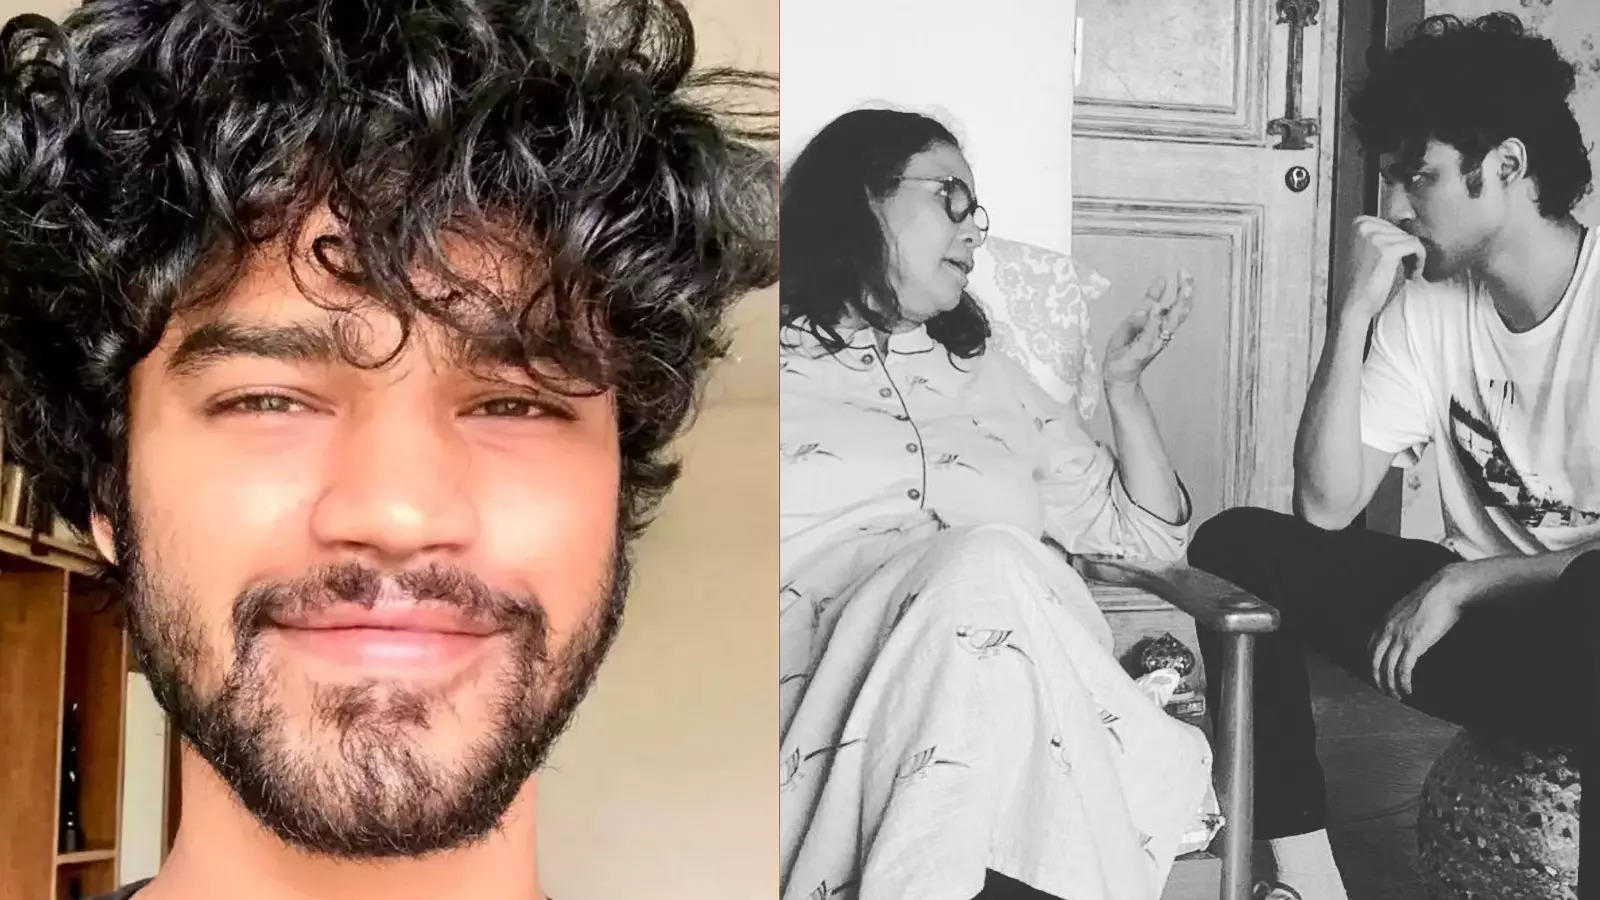 late-irrfan-khans-son-babil-khan-gets-degree-despite-dropping-out-of-college-mom-sutapa-sikdar-reacts